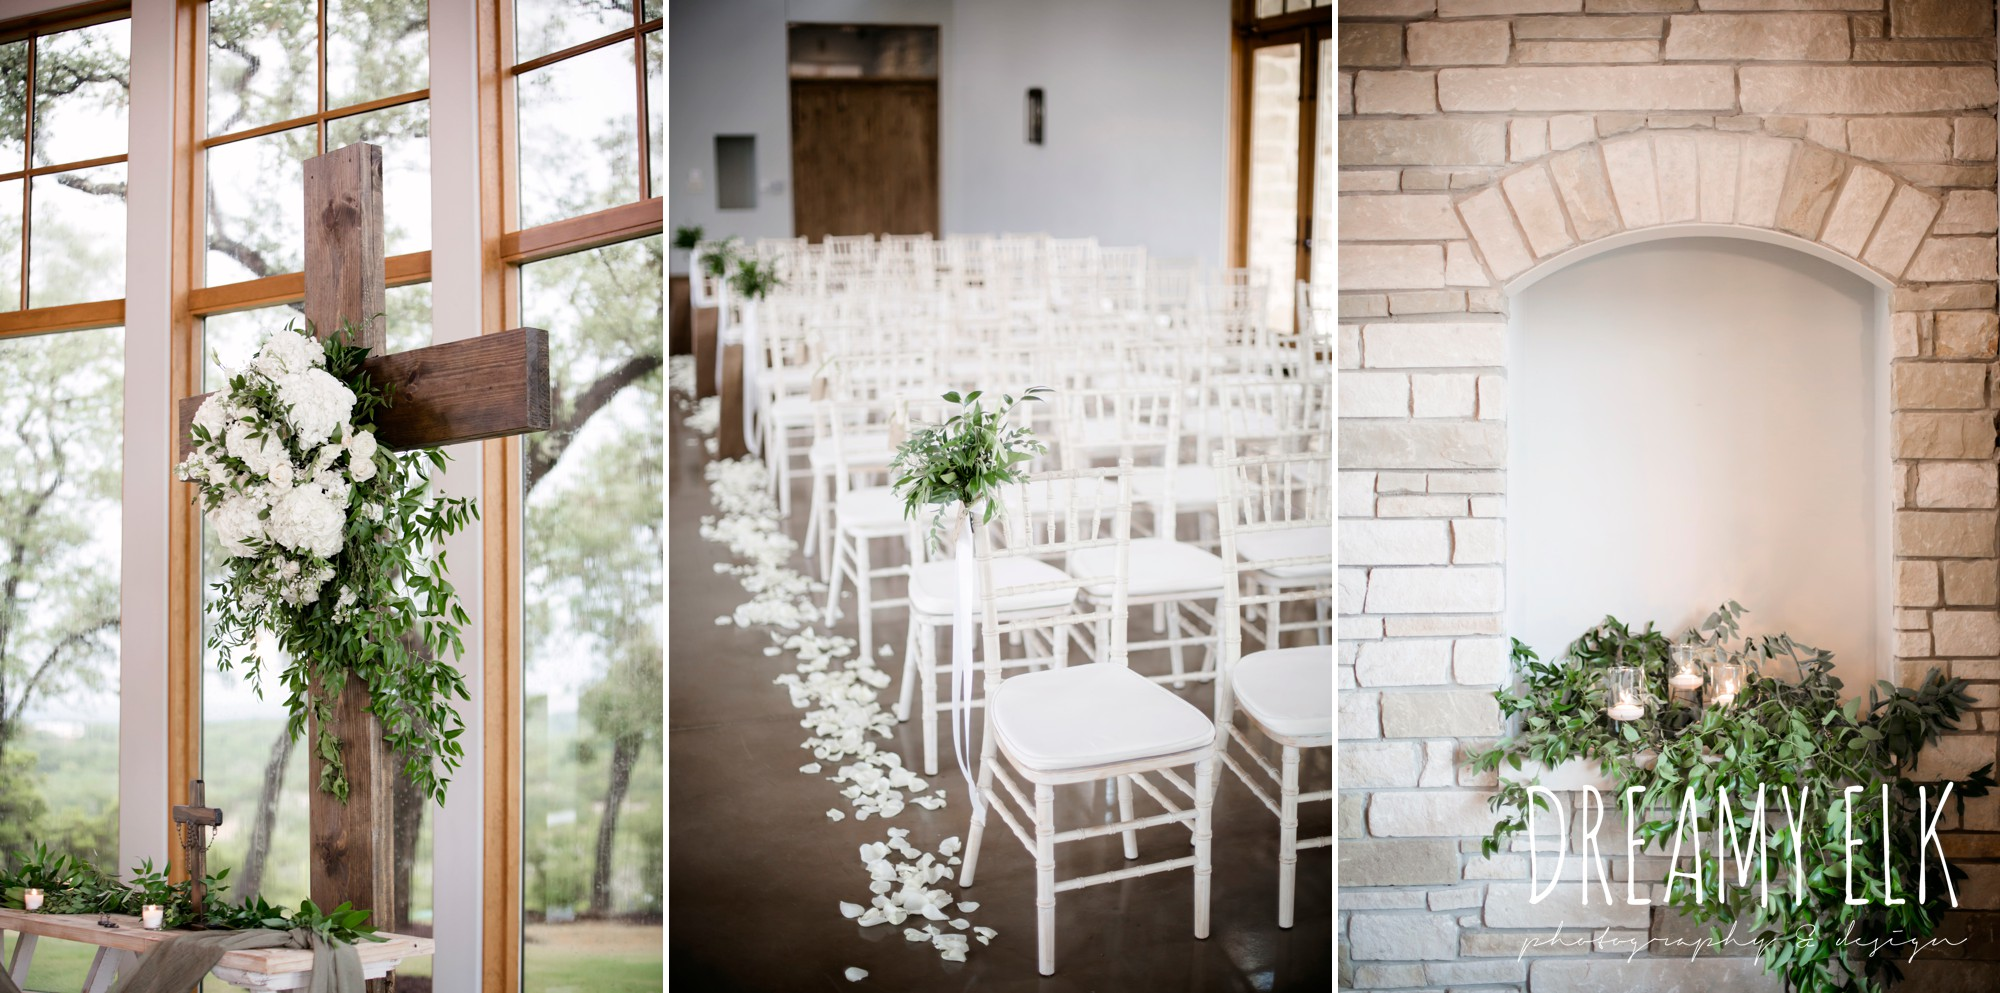 indoor ceremony, wild bunches floral, summer july wedding photo, canyonwood ridge, dripping springs, texas {dreamy elk photography and design}